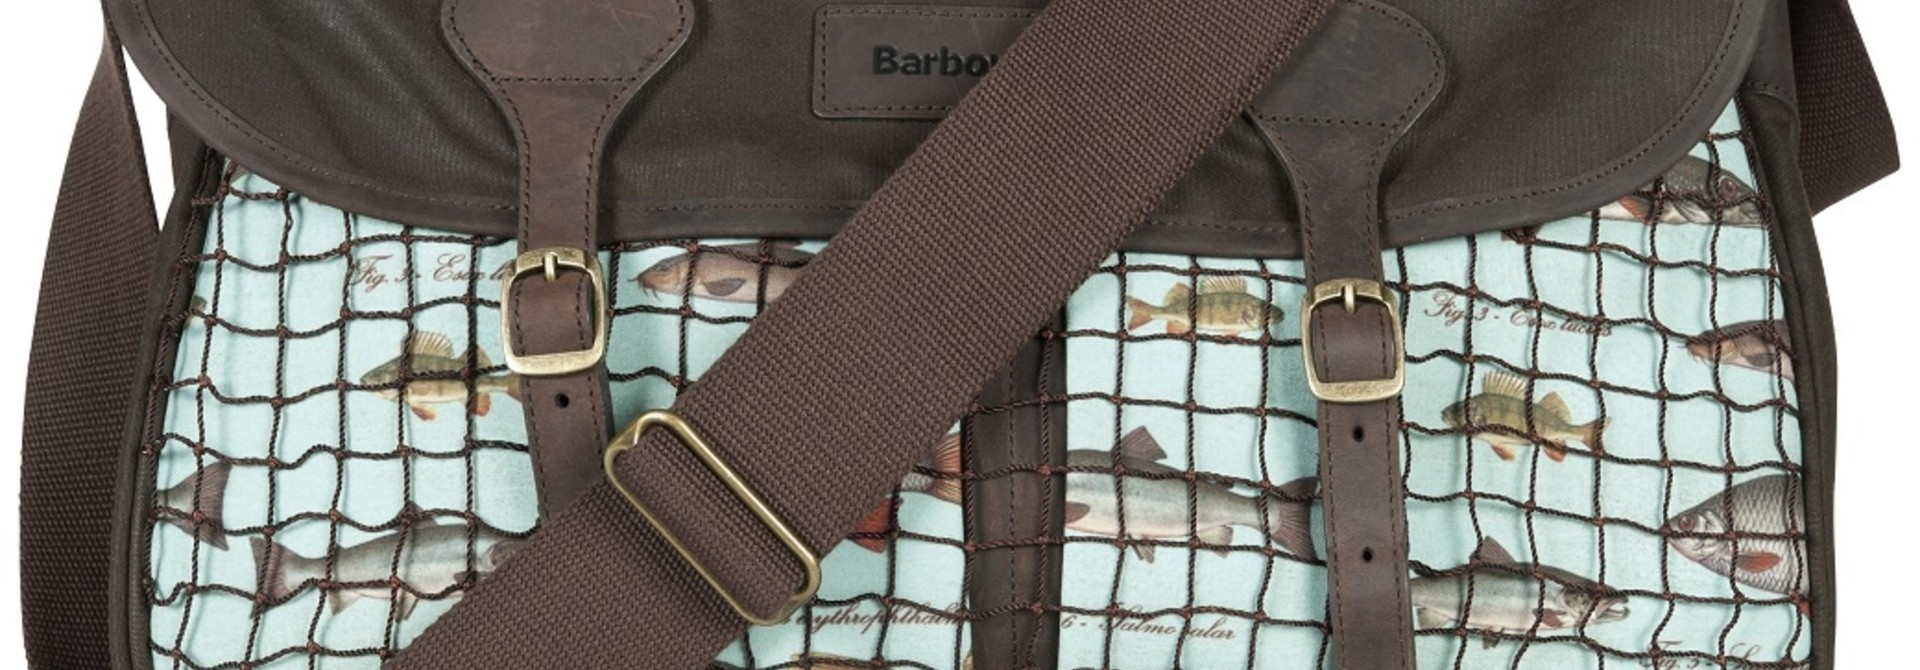 Barbour Fish Print Dry Fly